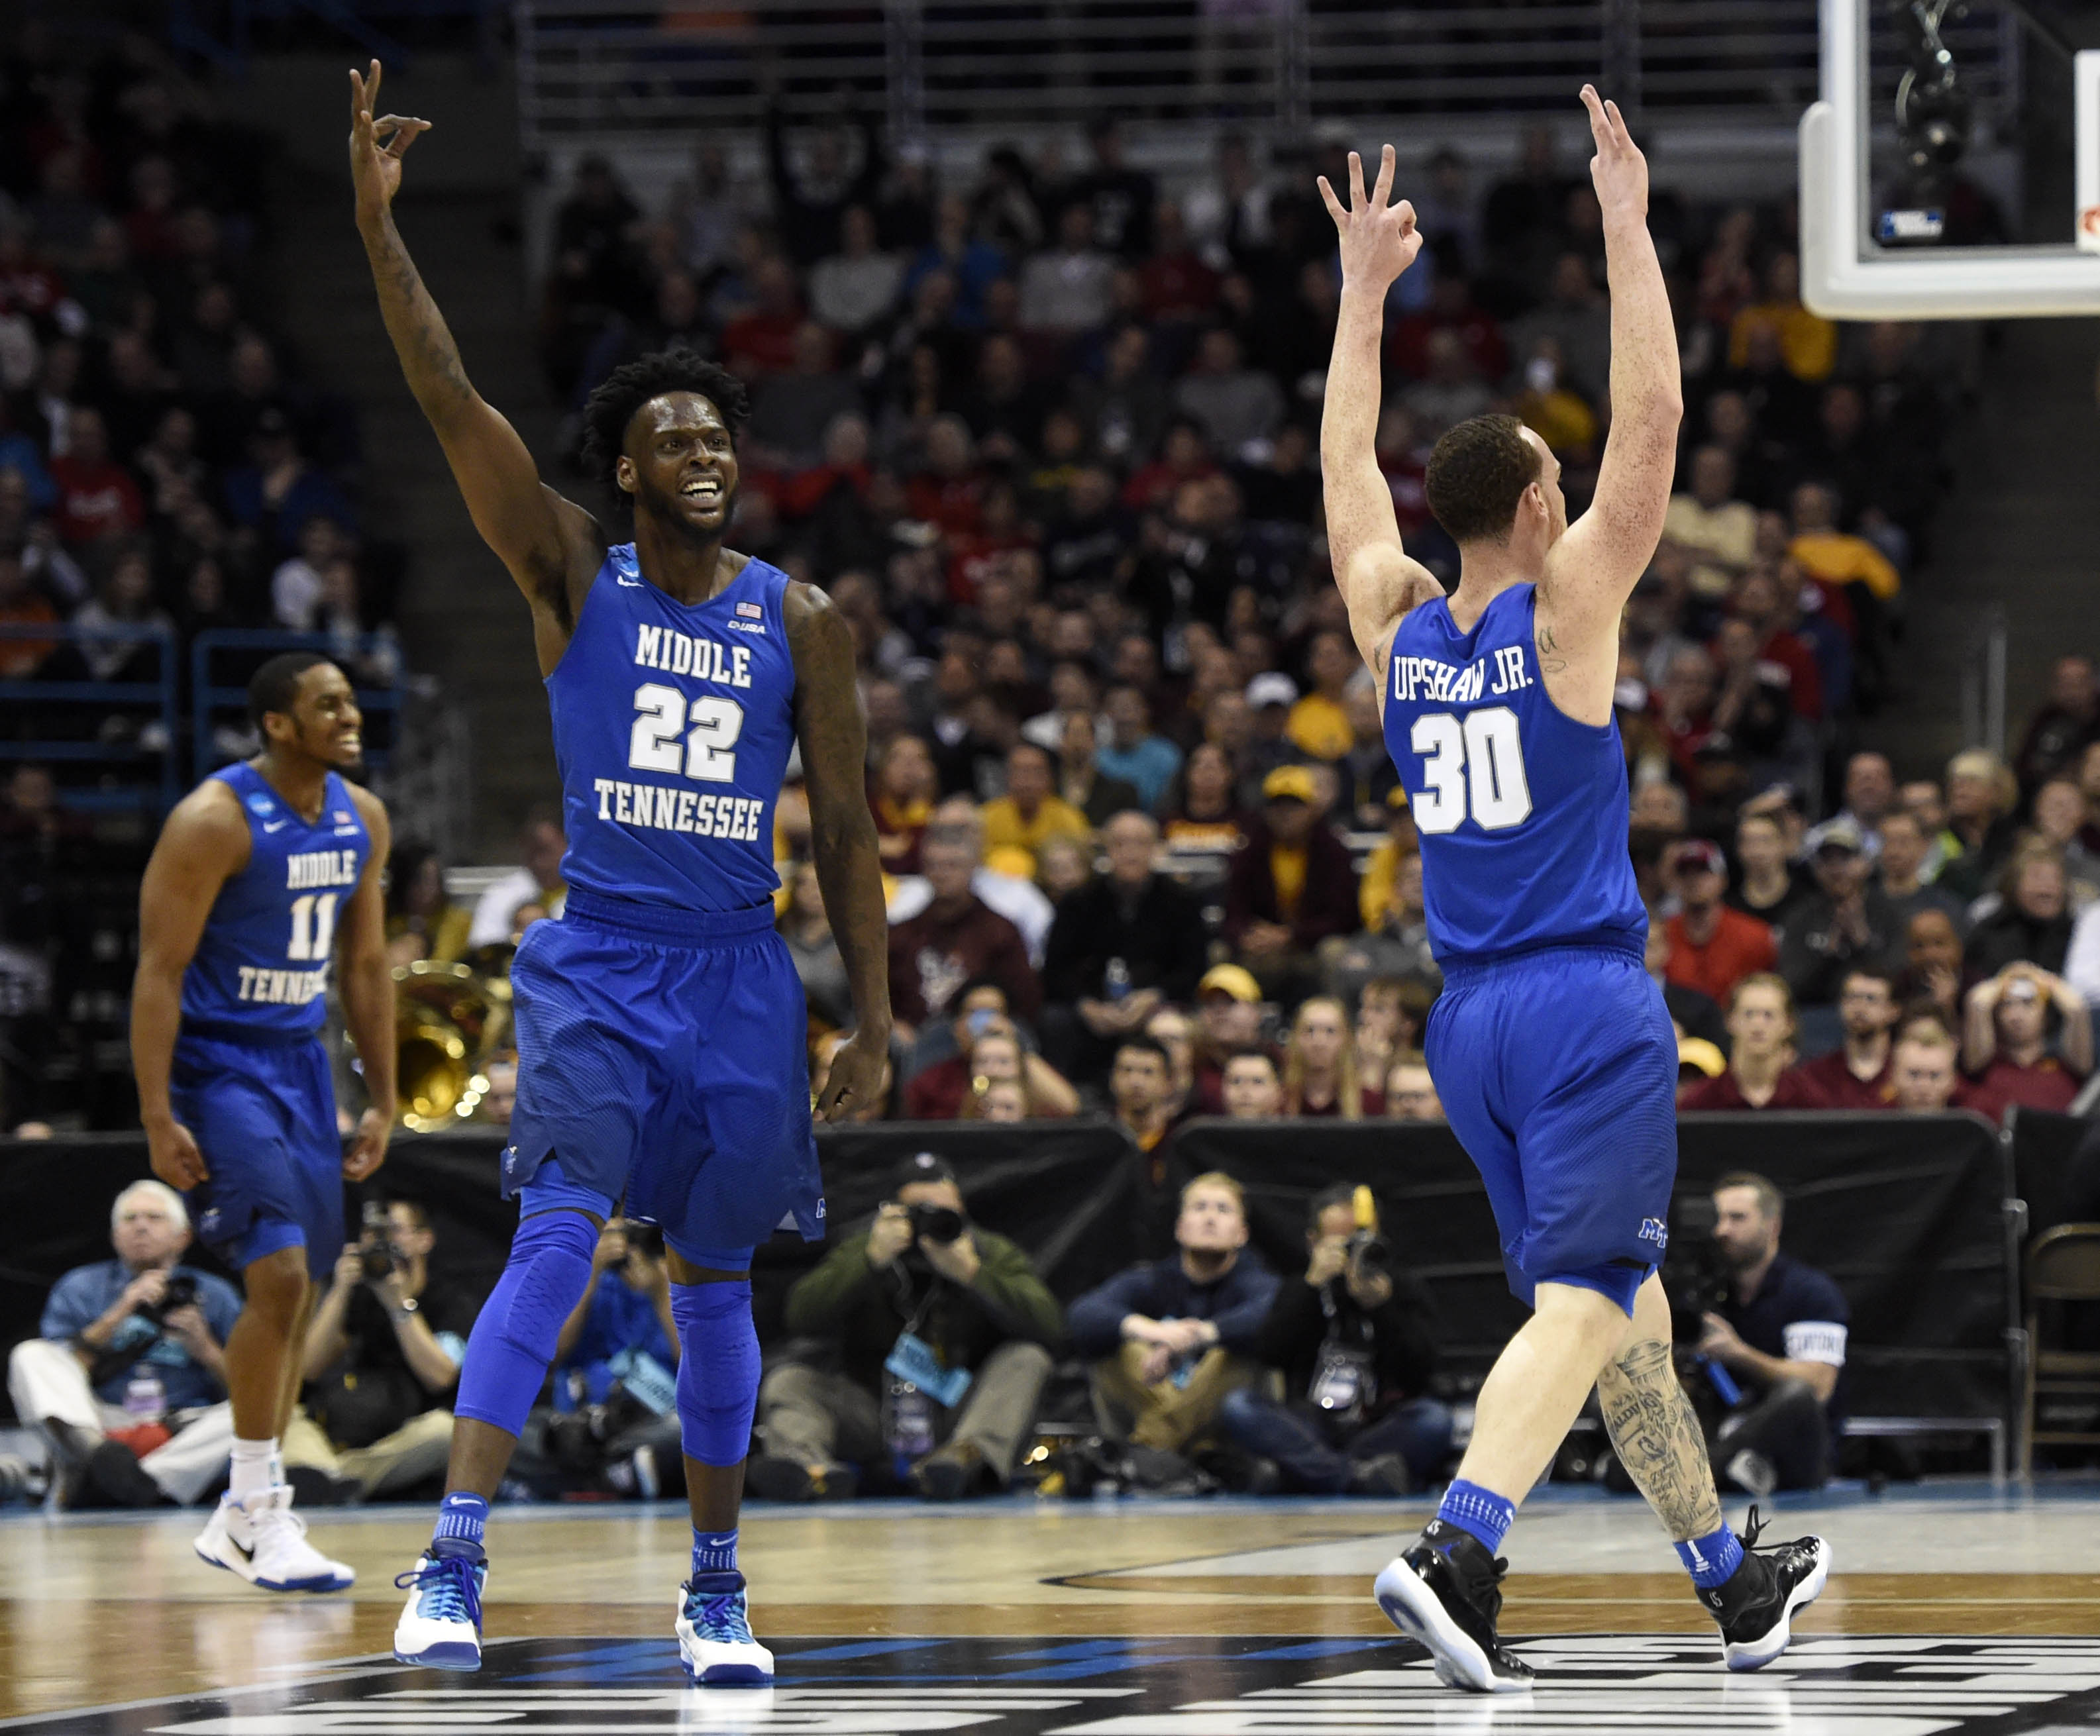 9947519-ncaa-basketball-ncaa-tournament-first-round-minnesota-vs-middle-tennessee-state